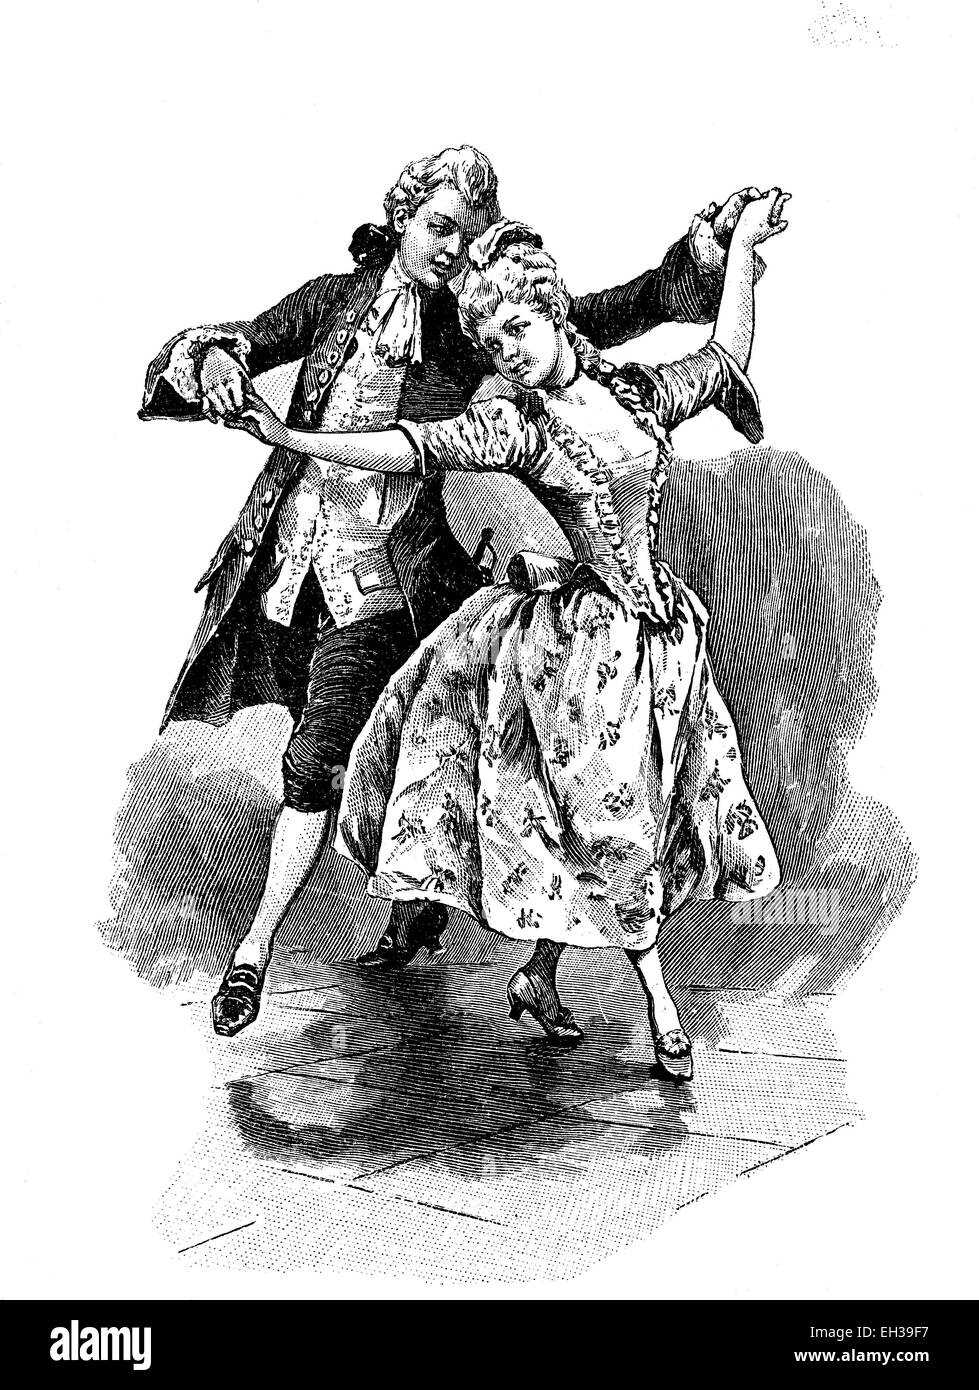 Allemande, a processional dance, woodcut, 1888 - Stock Image